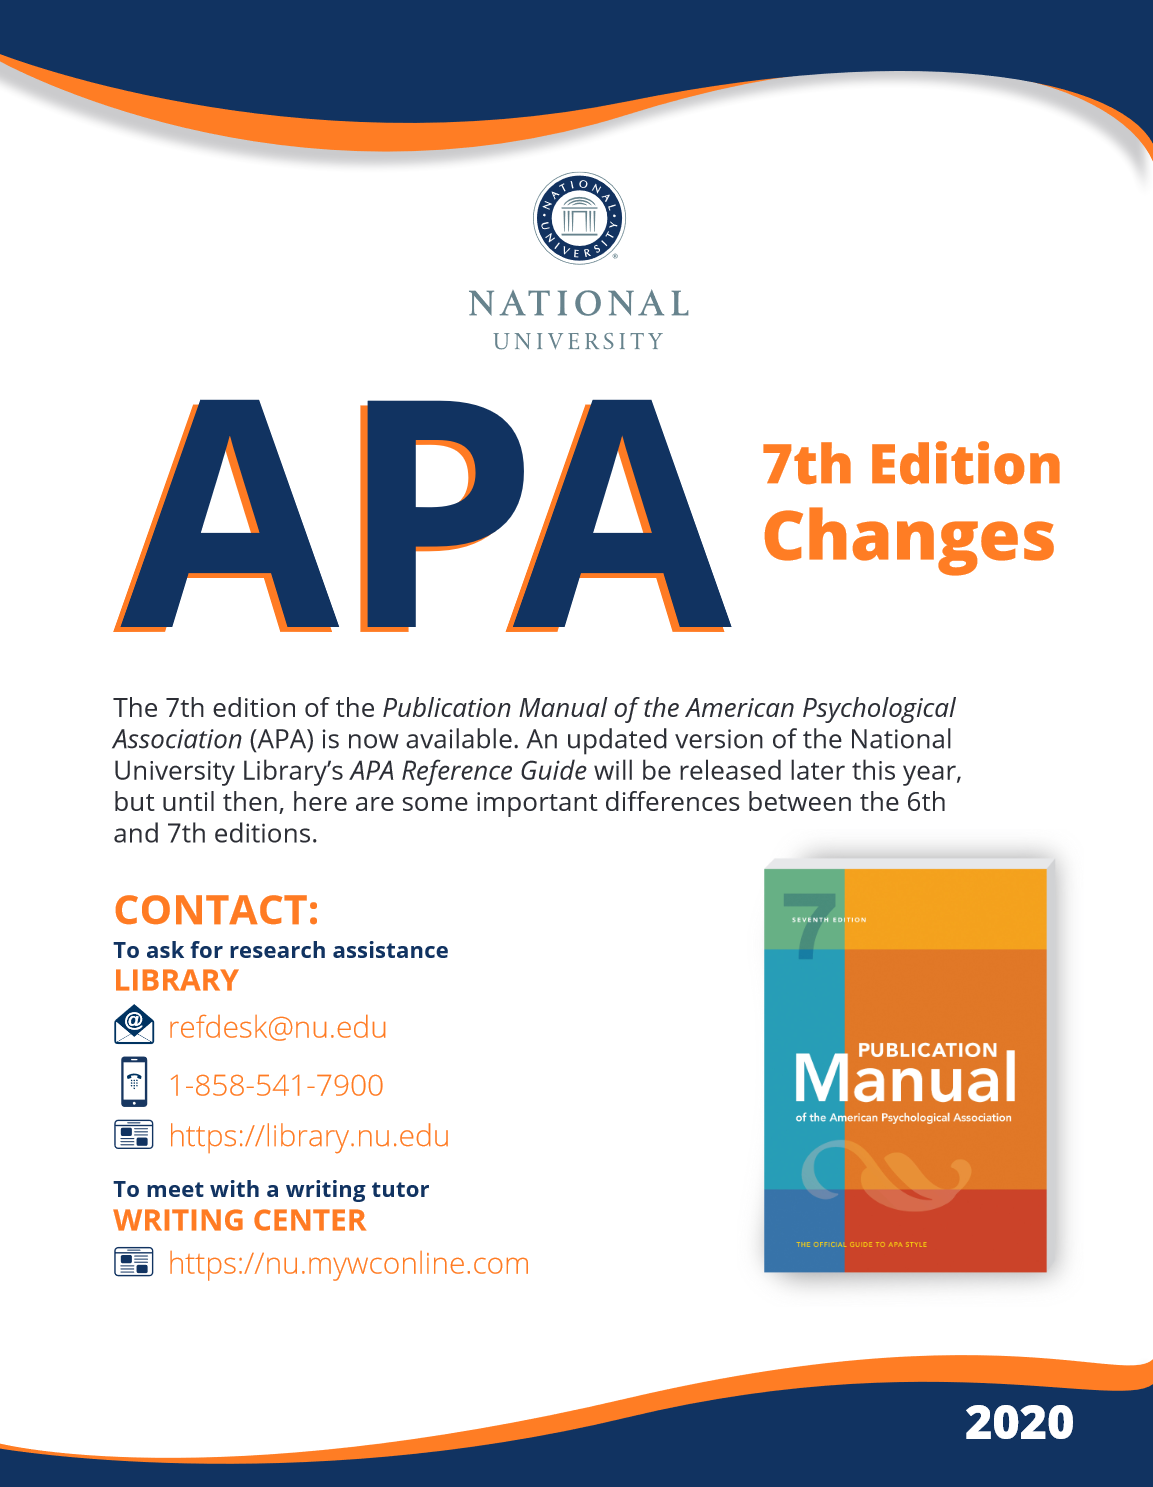 Image of the APA 7th Edition Changes Guide